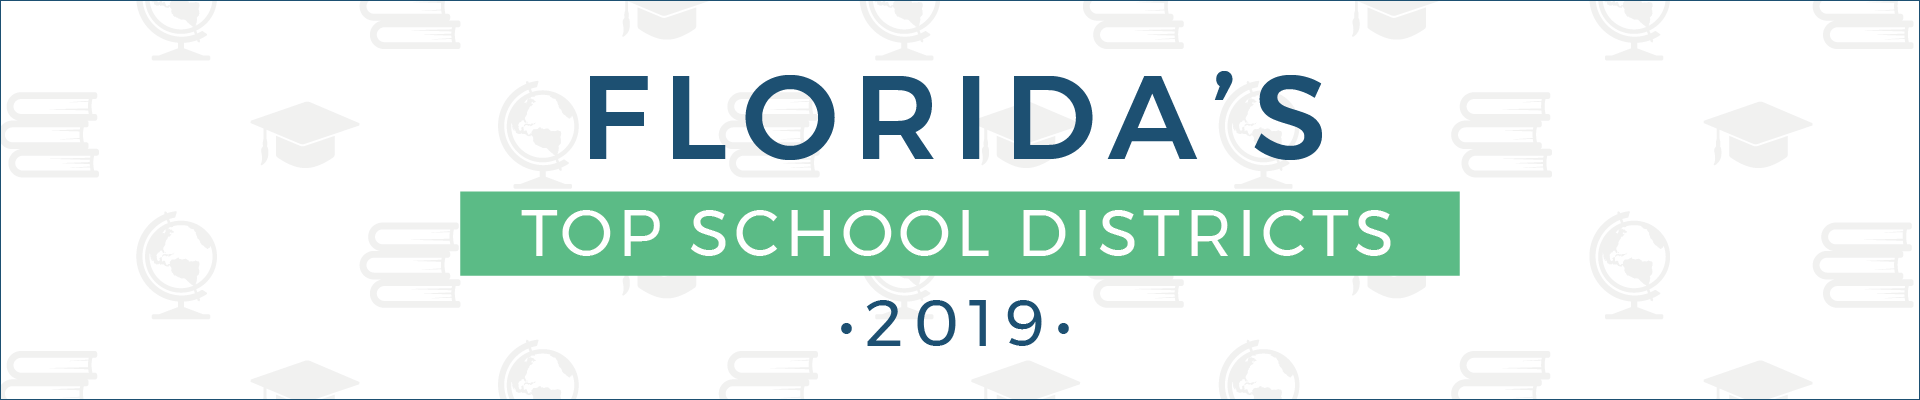 top school districts, 2019 - florida - banner